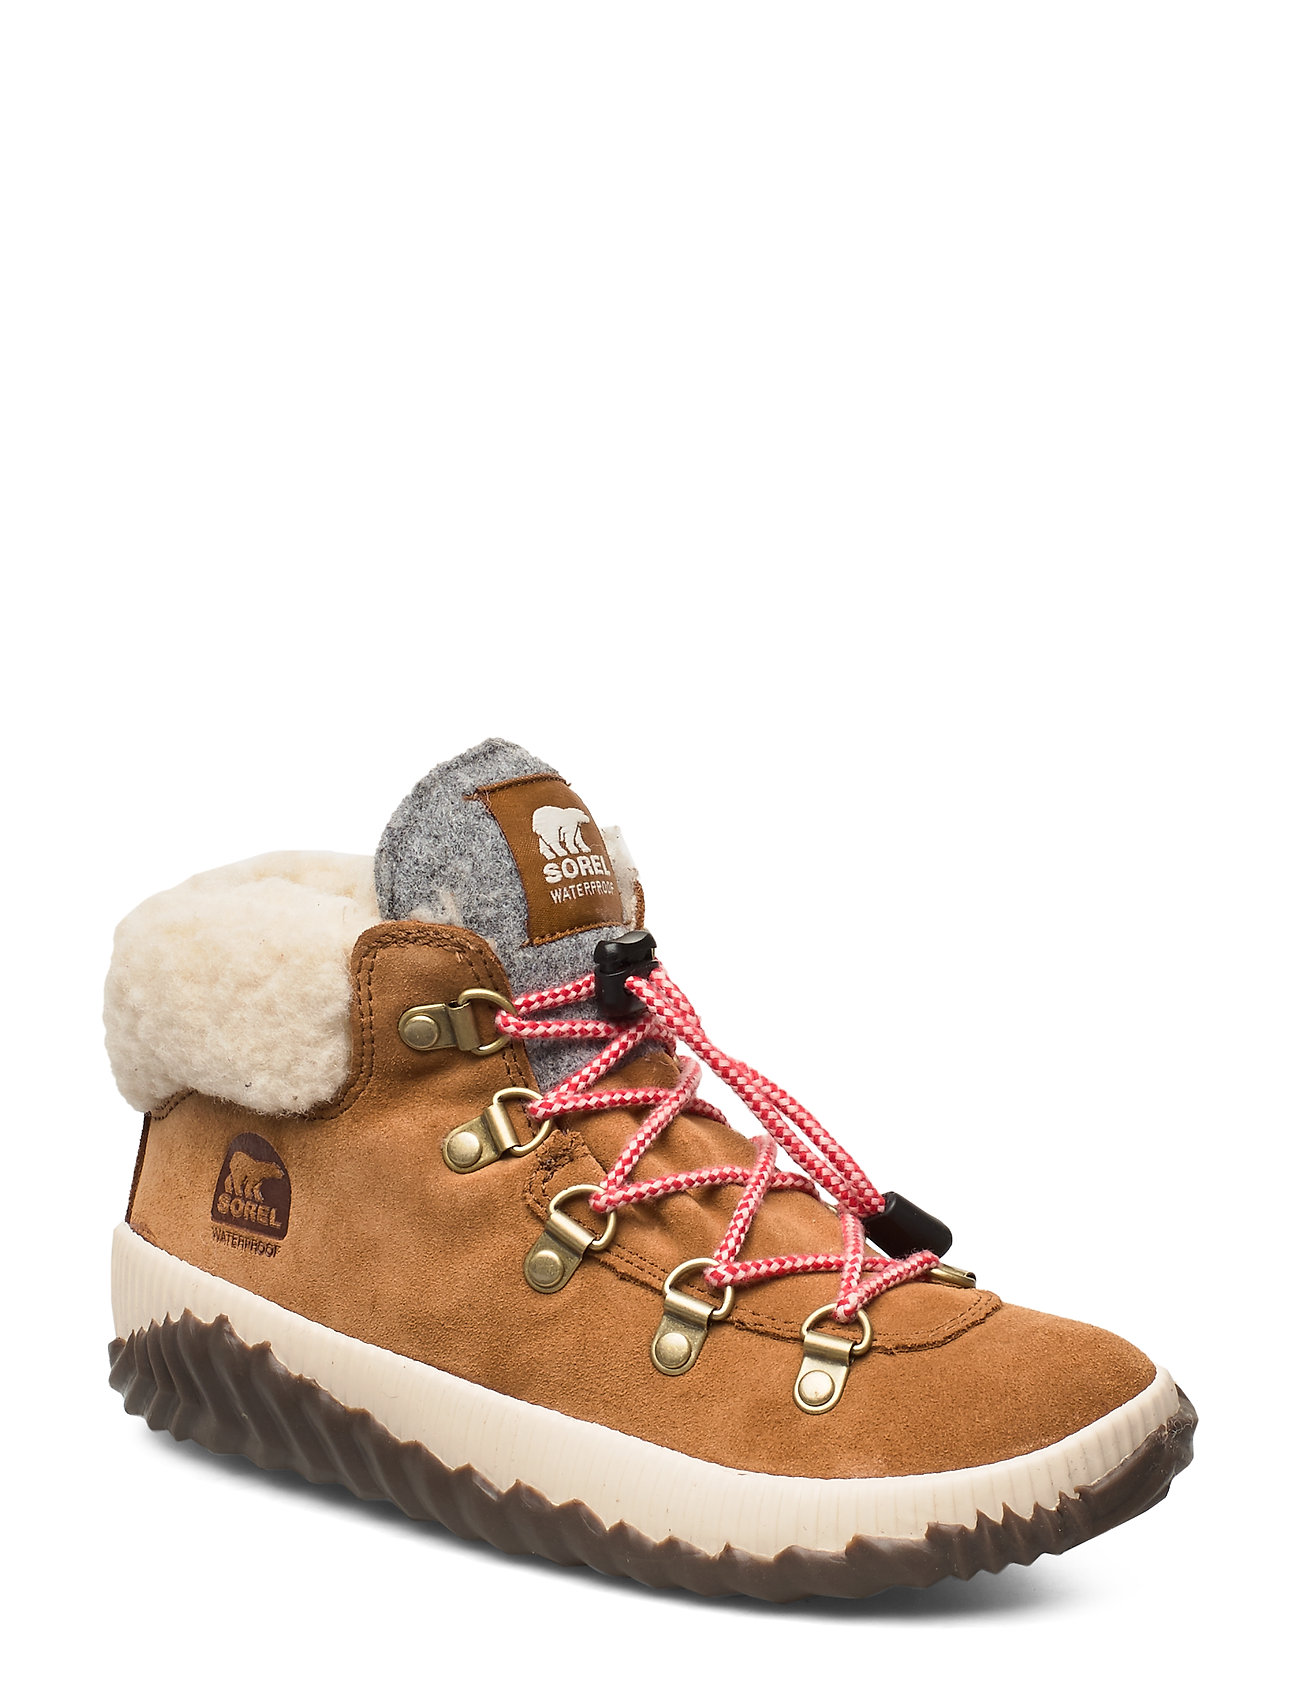 Sorel YOUTH OUT´N ABOUT CONQUEST - CAMEL BROWN, QUARRY